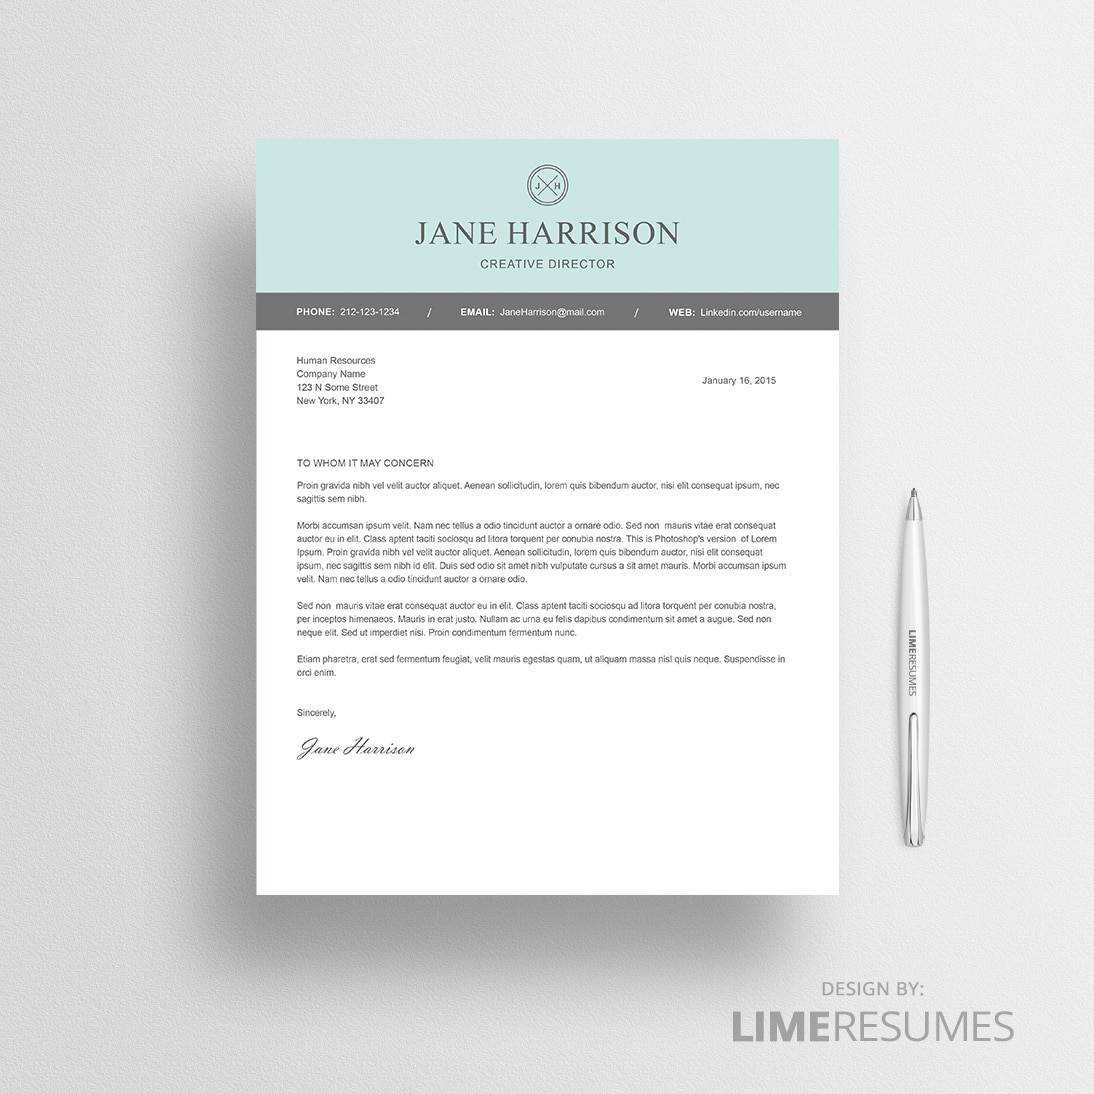 modern cover letter templates for resume   Haci saecsa co modern